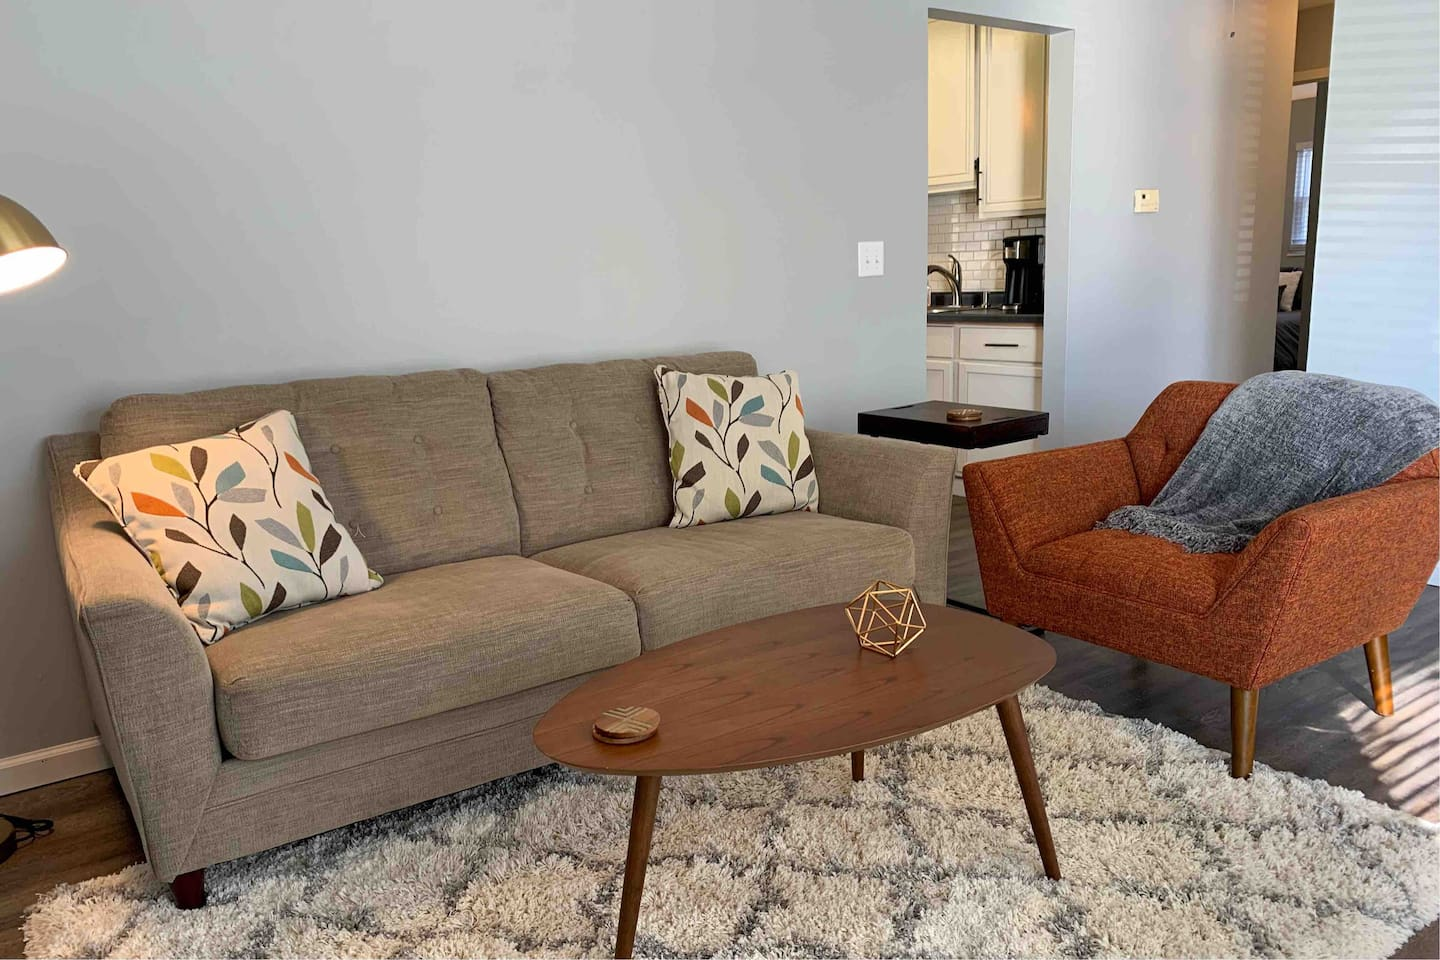 Plenty of room in the stylish living area. Including a full-size couch, mid century modern chair, desk and office chair, smart TV, retro lamp, and board games!